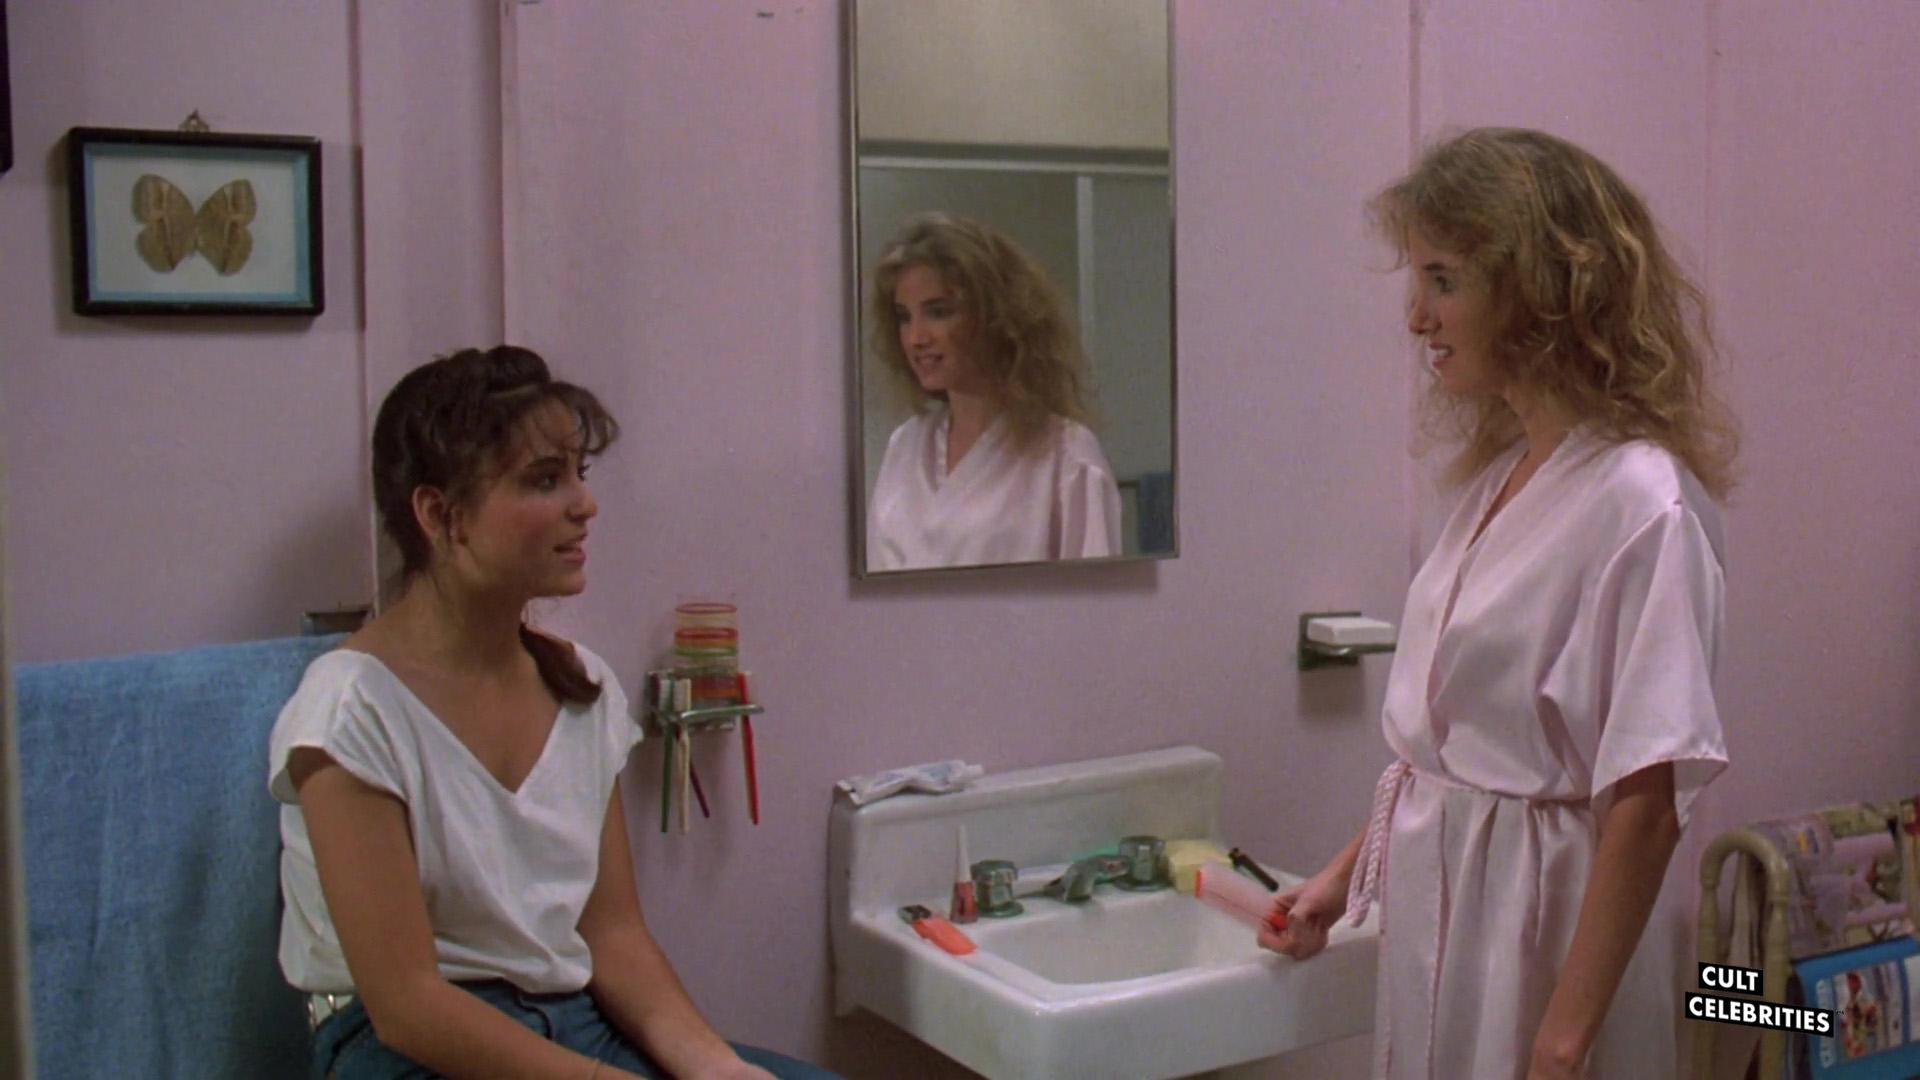 Barbara Howard and Judie Aronson in Friday the 13th: The Final Chapter (1984)